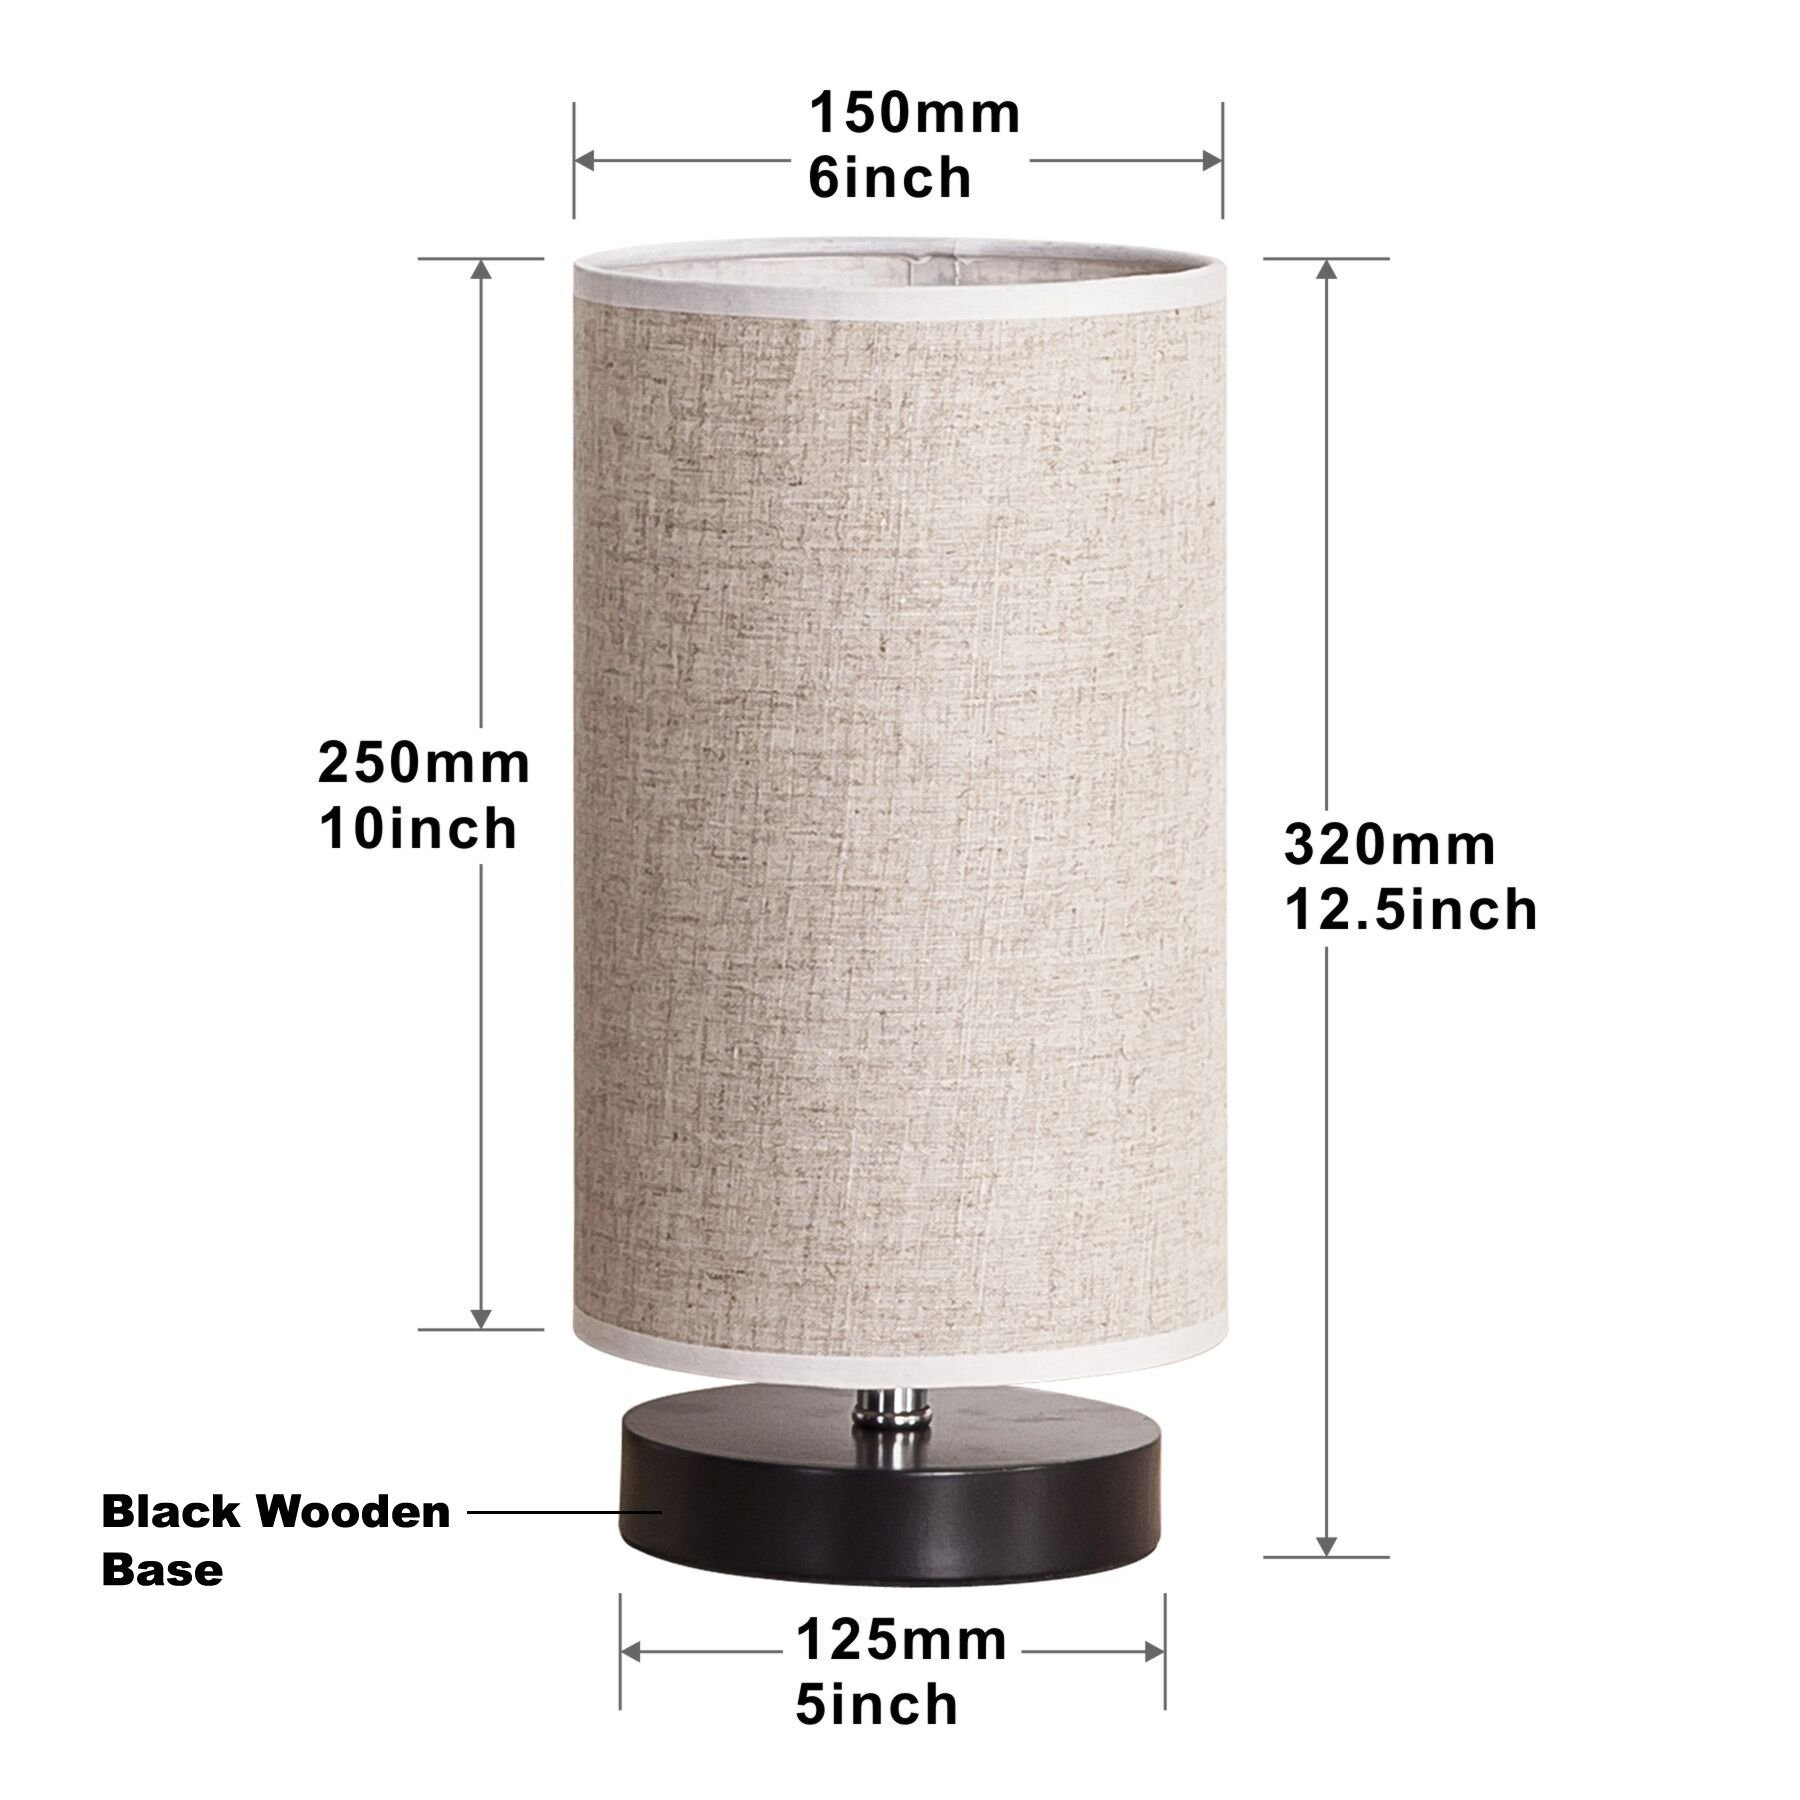 Lifeholder Table Lamp, Bedside Nightstand Lamp, Simple Desk Lamp, Fabric Wooden Table Lamp for Bedroom Living Room Office Study, Cylinder Black Base by lifeholder (Image #4)